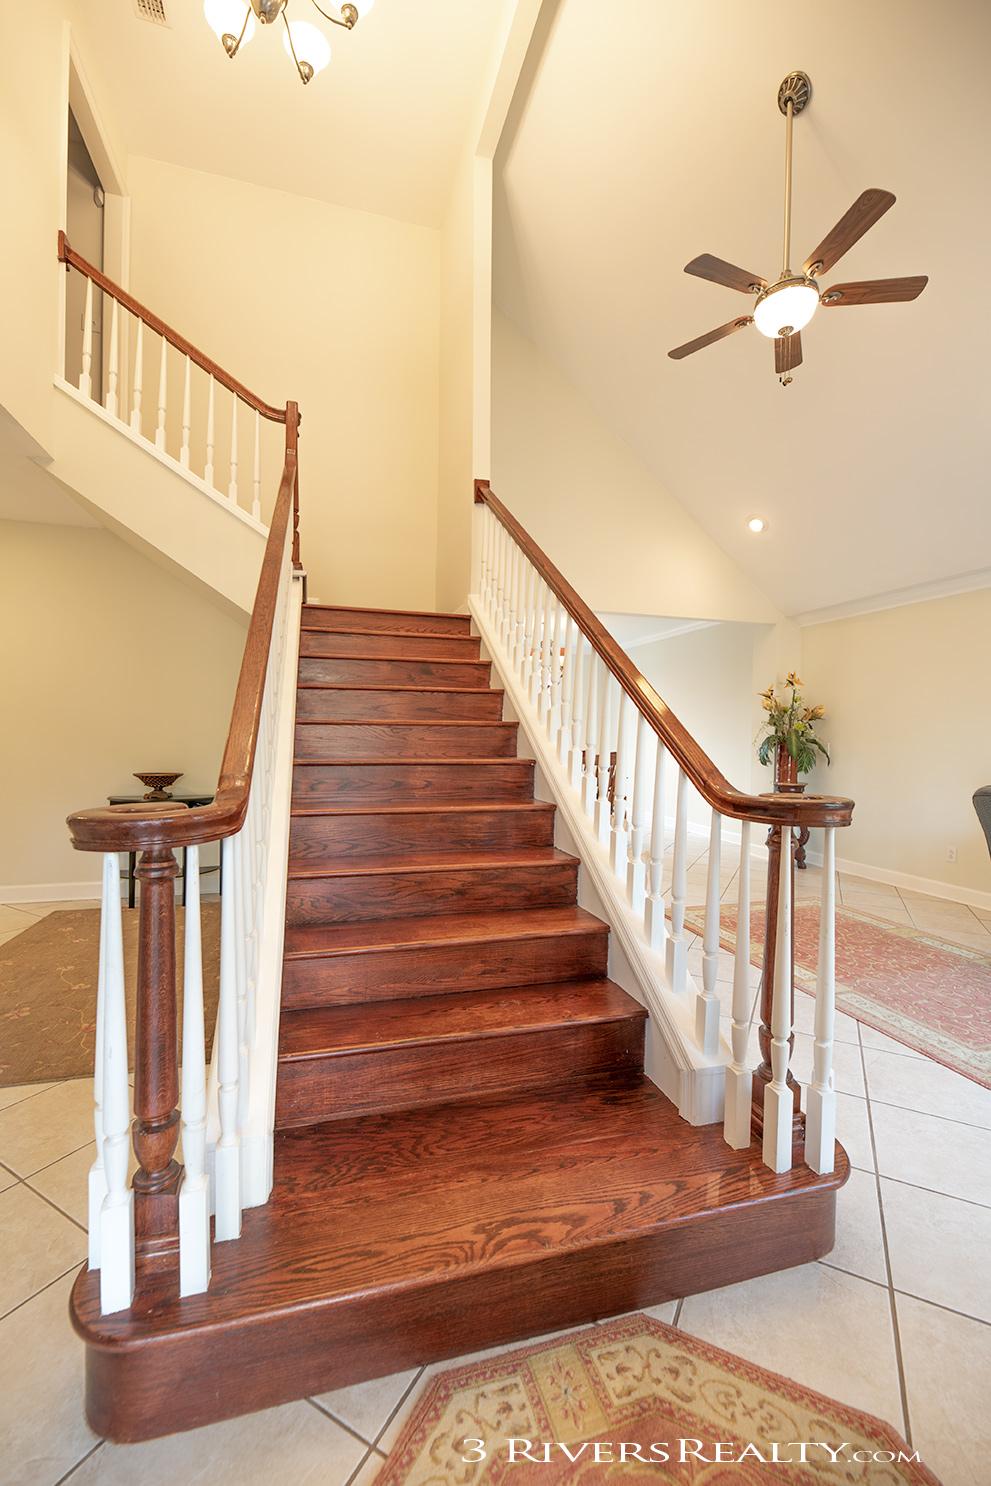 3-rivers-realty,three-rivers-realty,bainbridge-ga-real-estate,mills-brock,taurususa,bainbridge-georgia-homes-for-sale,stairs.jpg